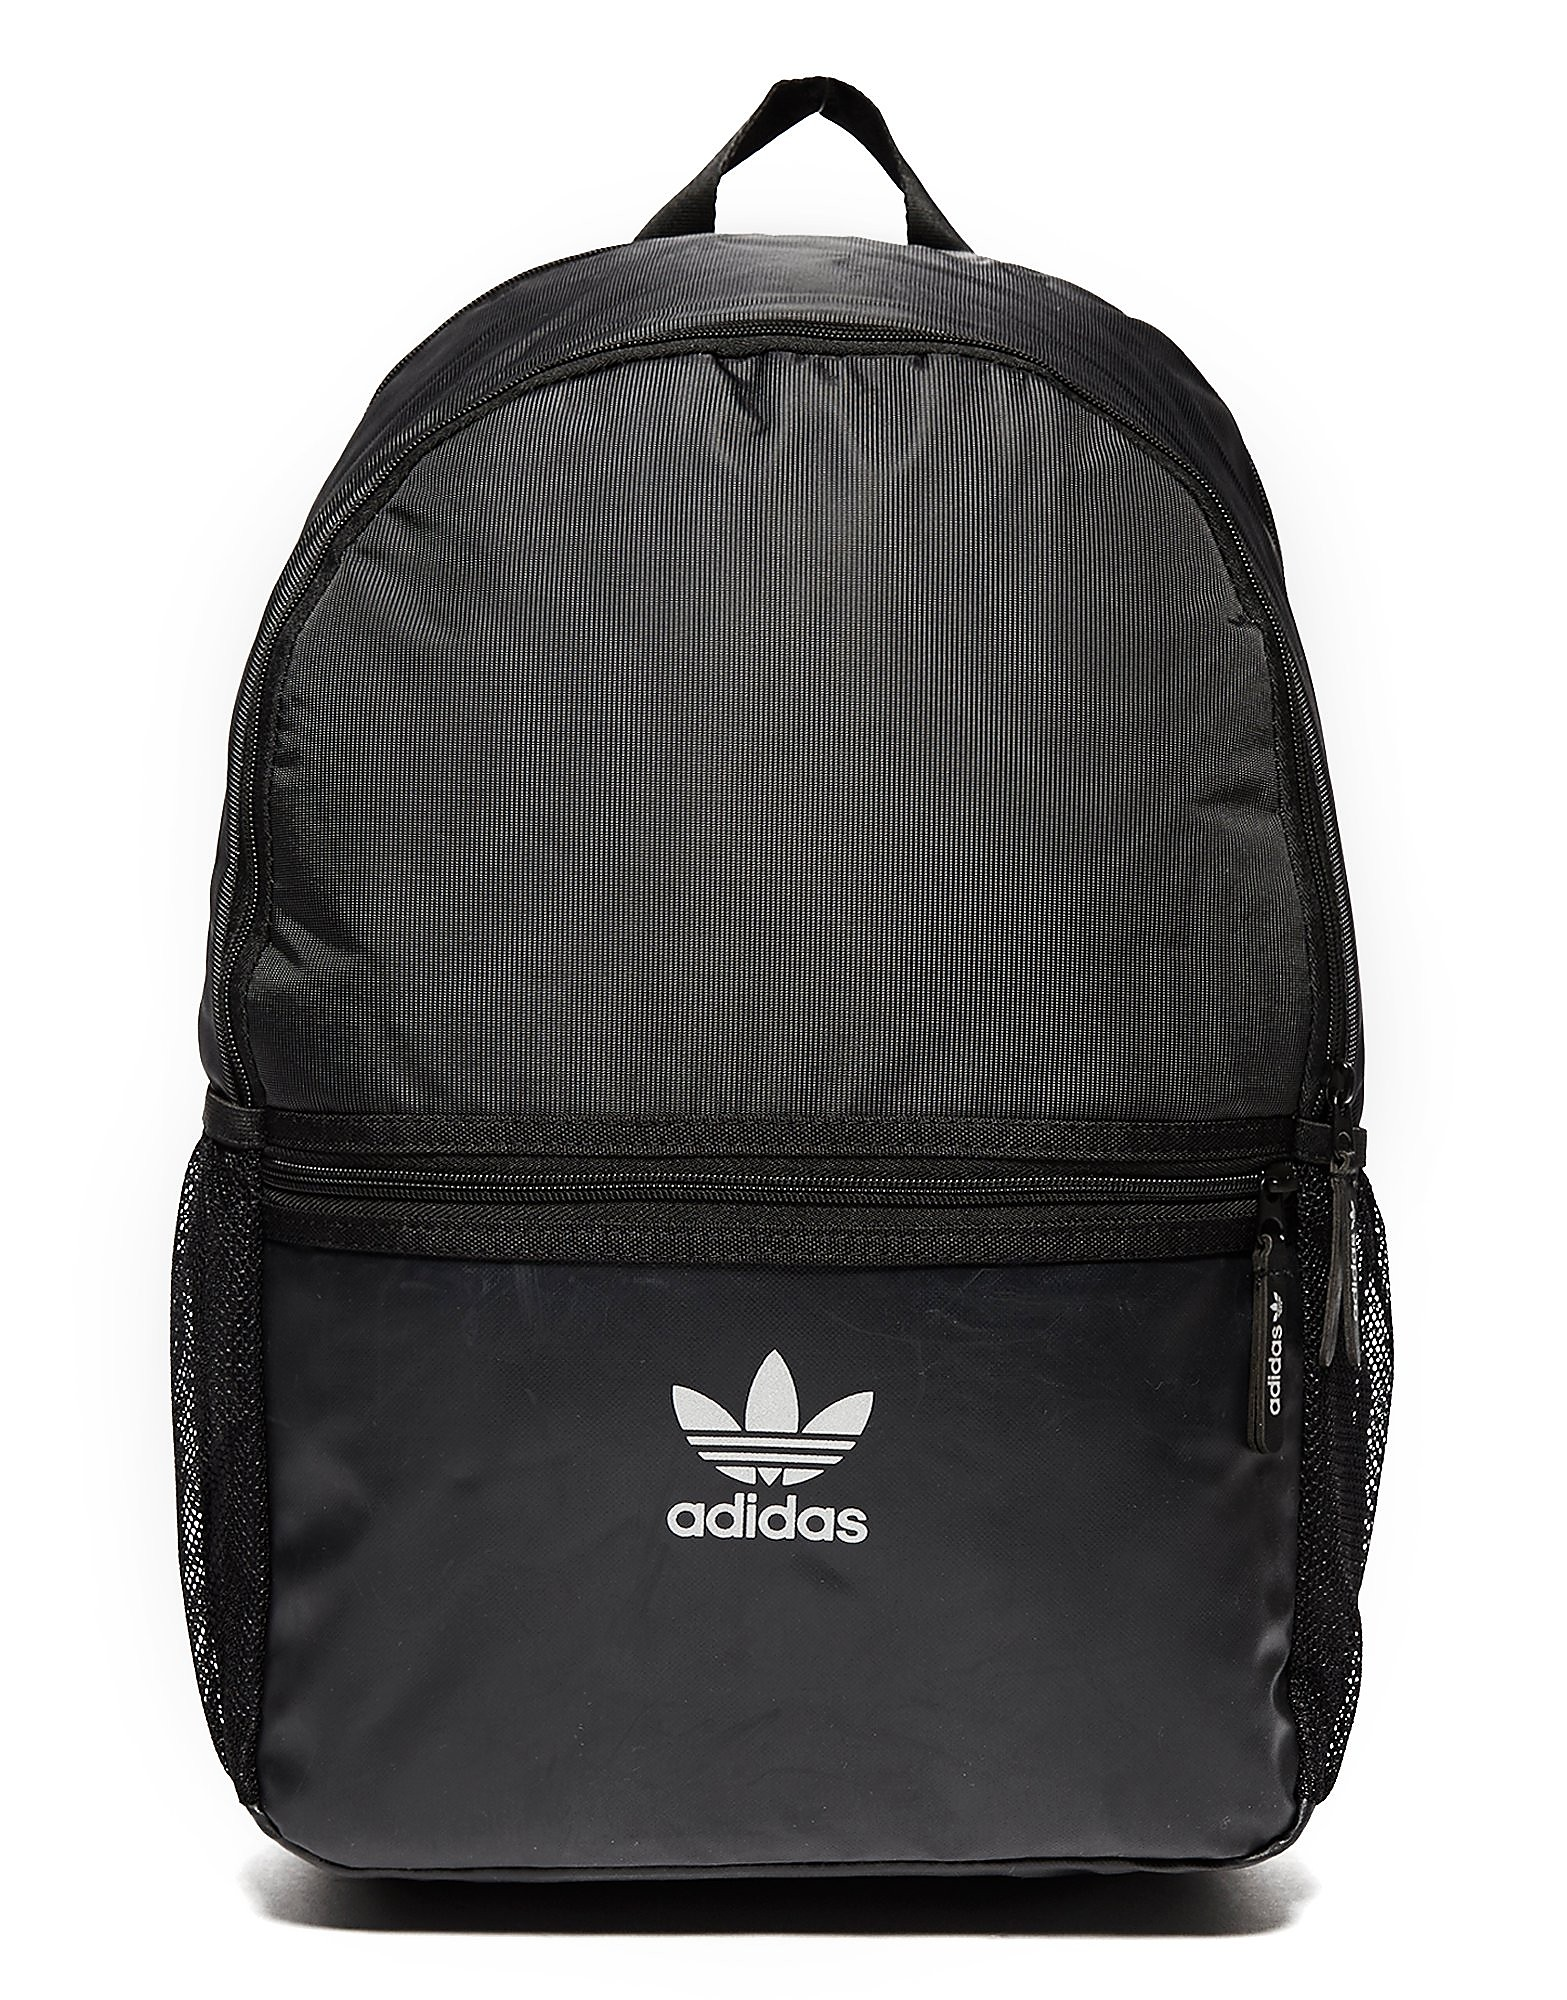 adidas Originals Outdoor Backpack